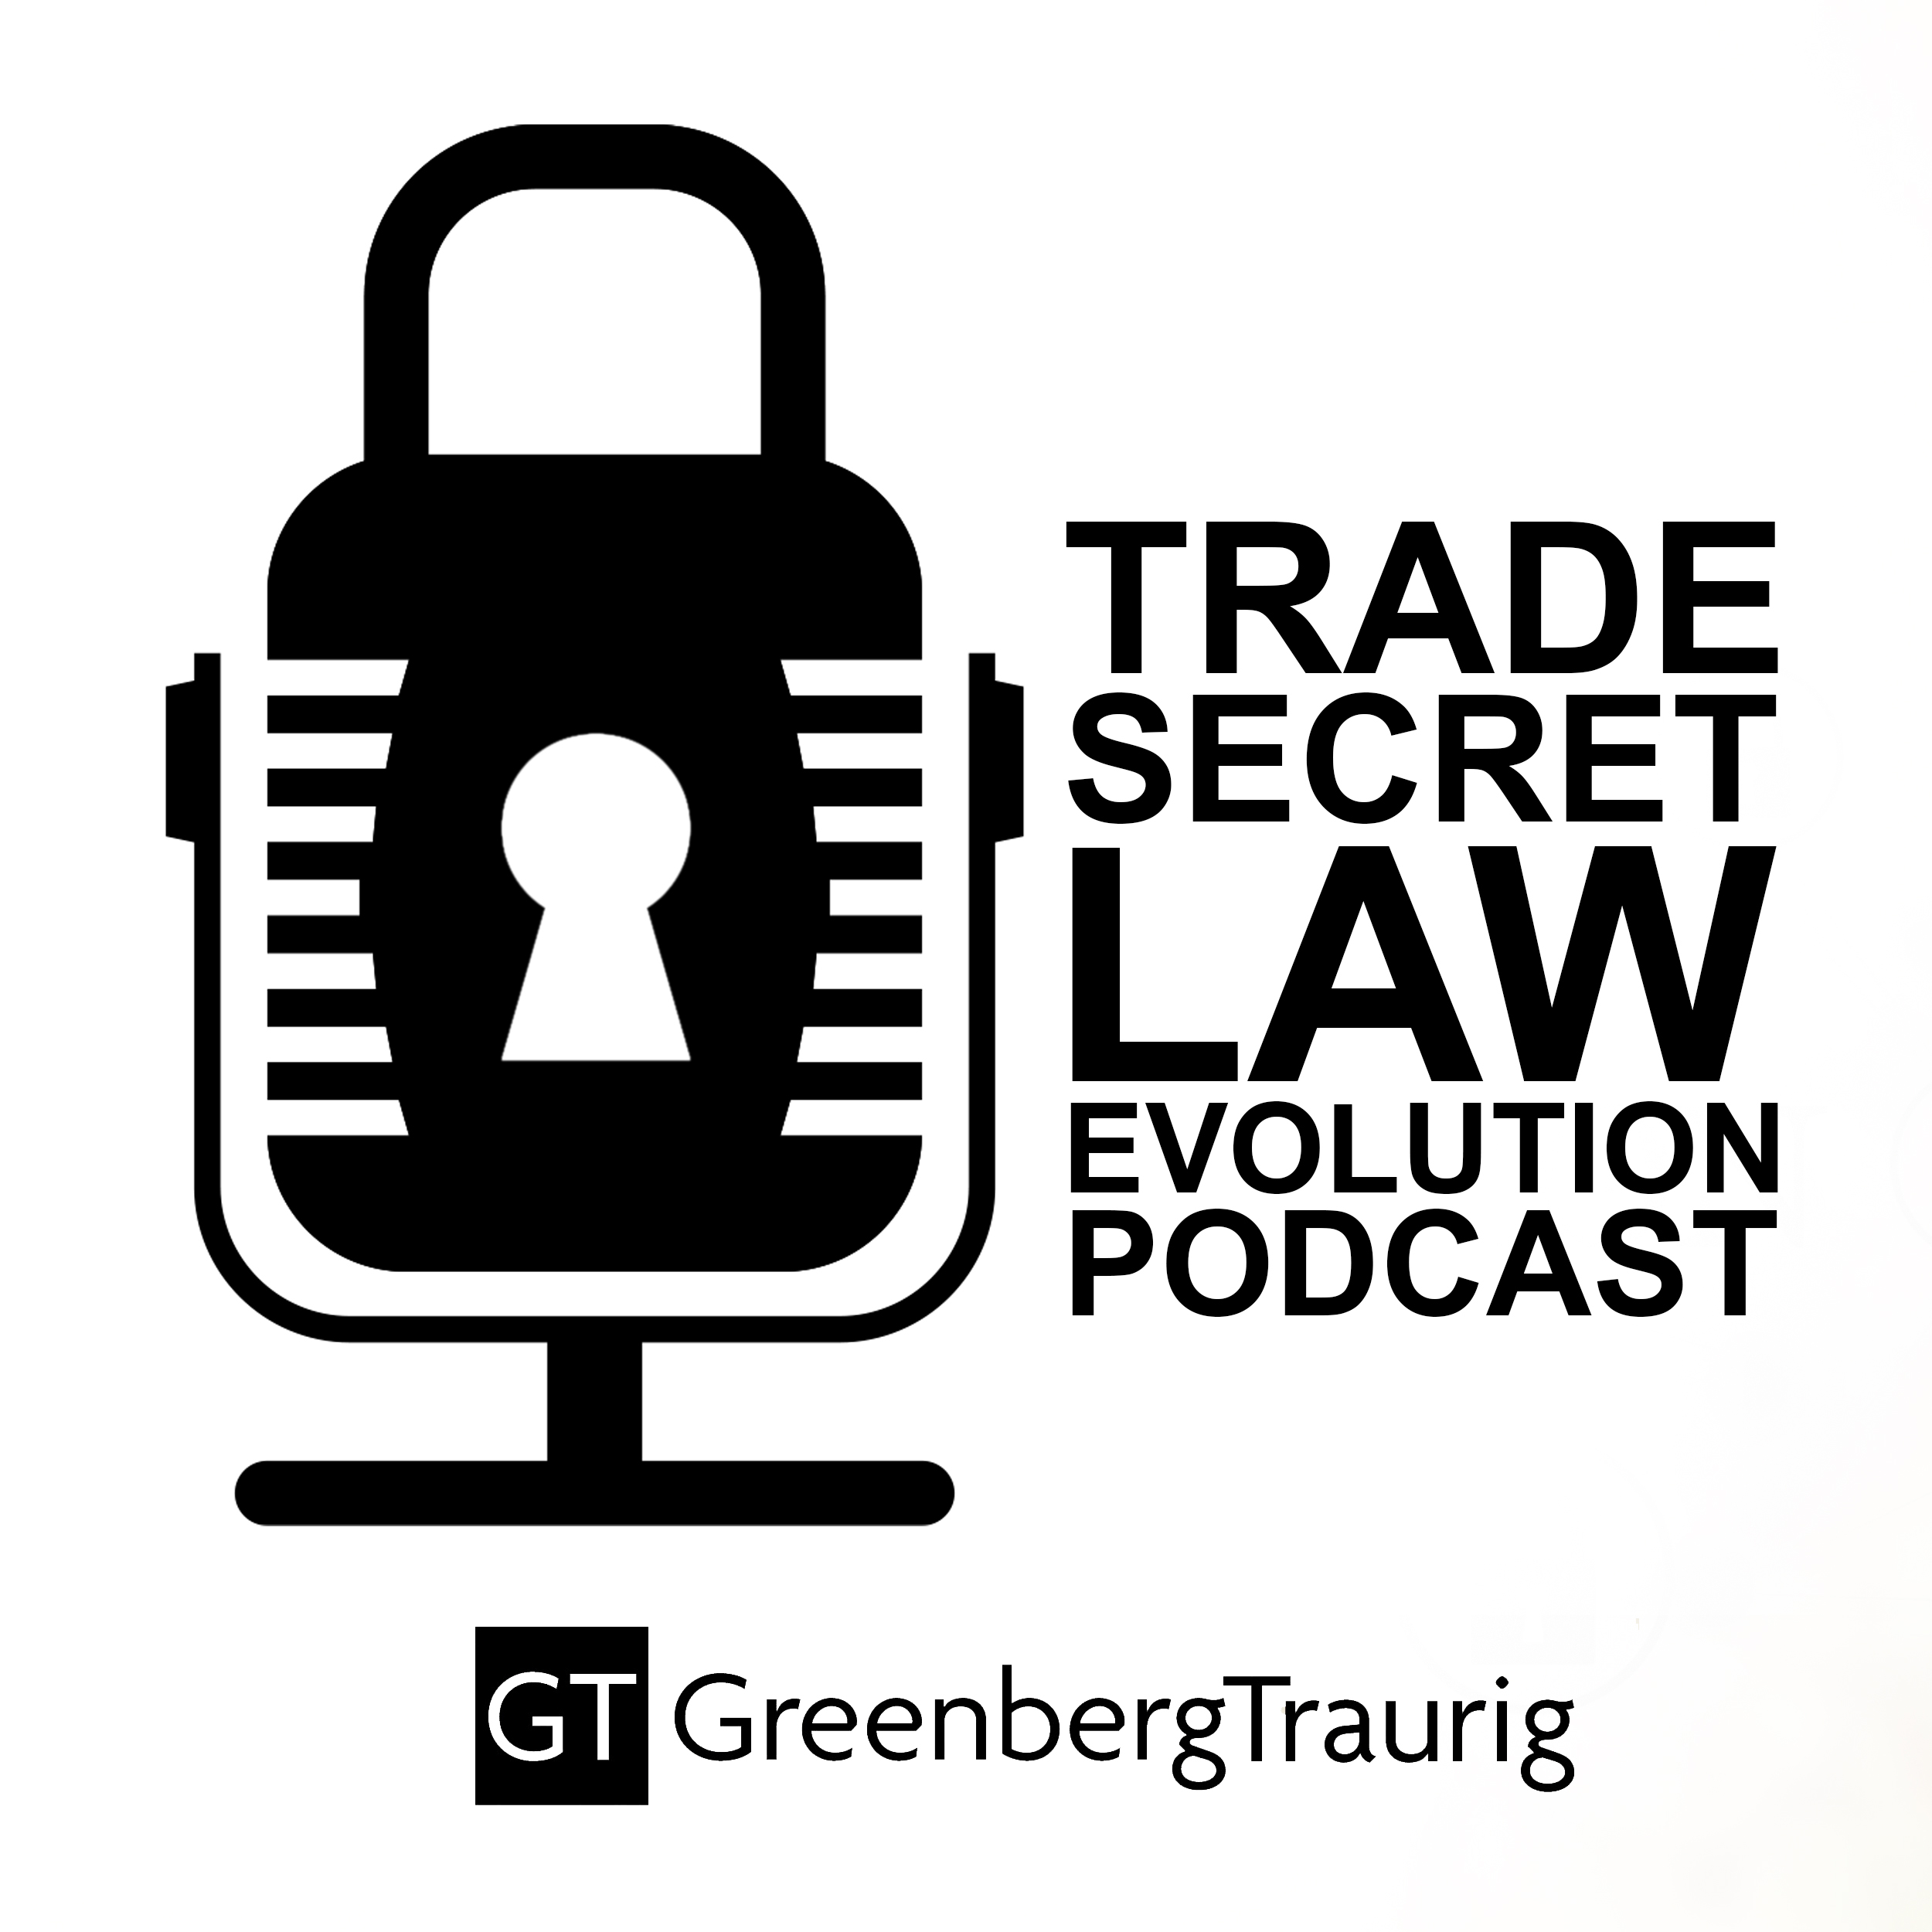 Trade Secret Law Evolution Podcast show art